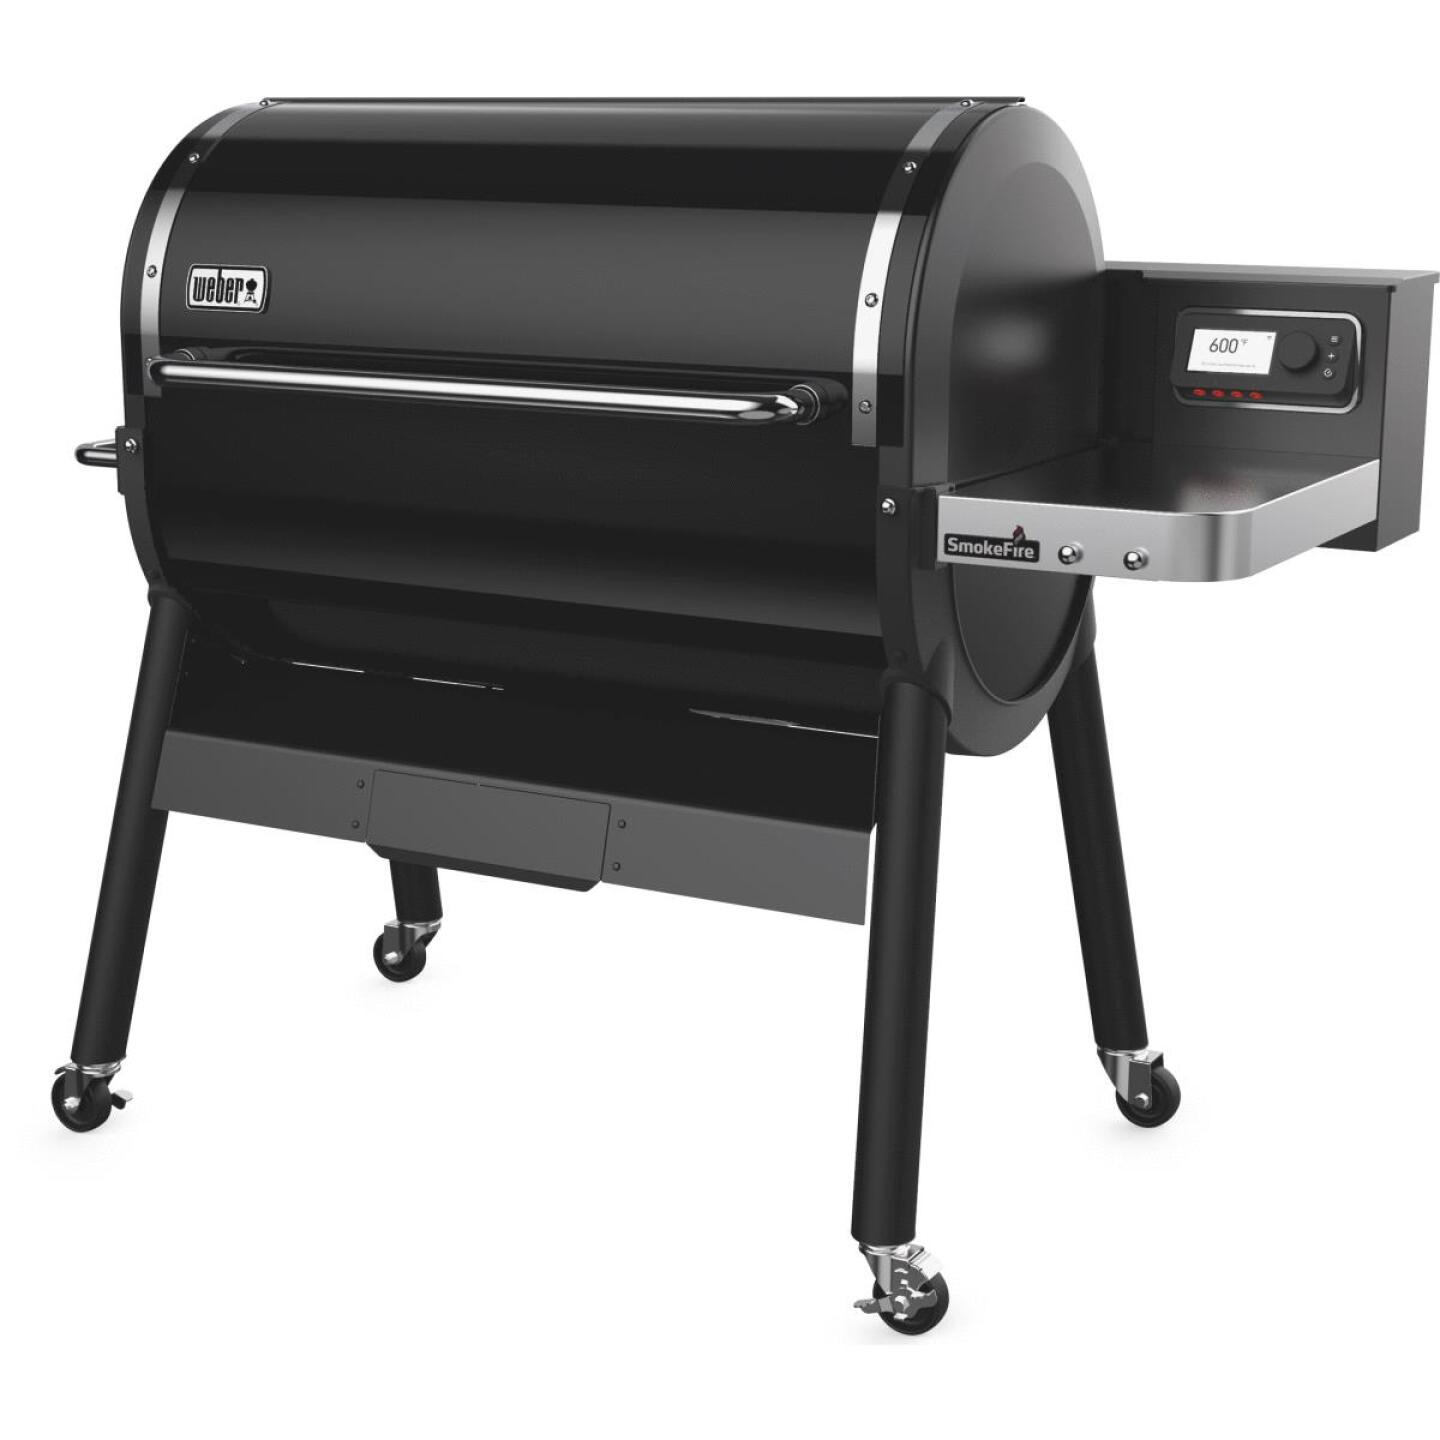 Weber SmokeFire EX6 Black 1008 Sq. In. Wood Pellet Grill Image 4